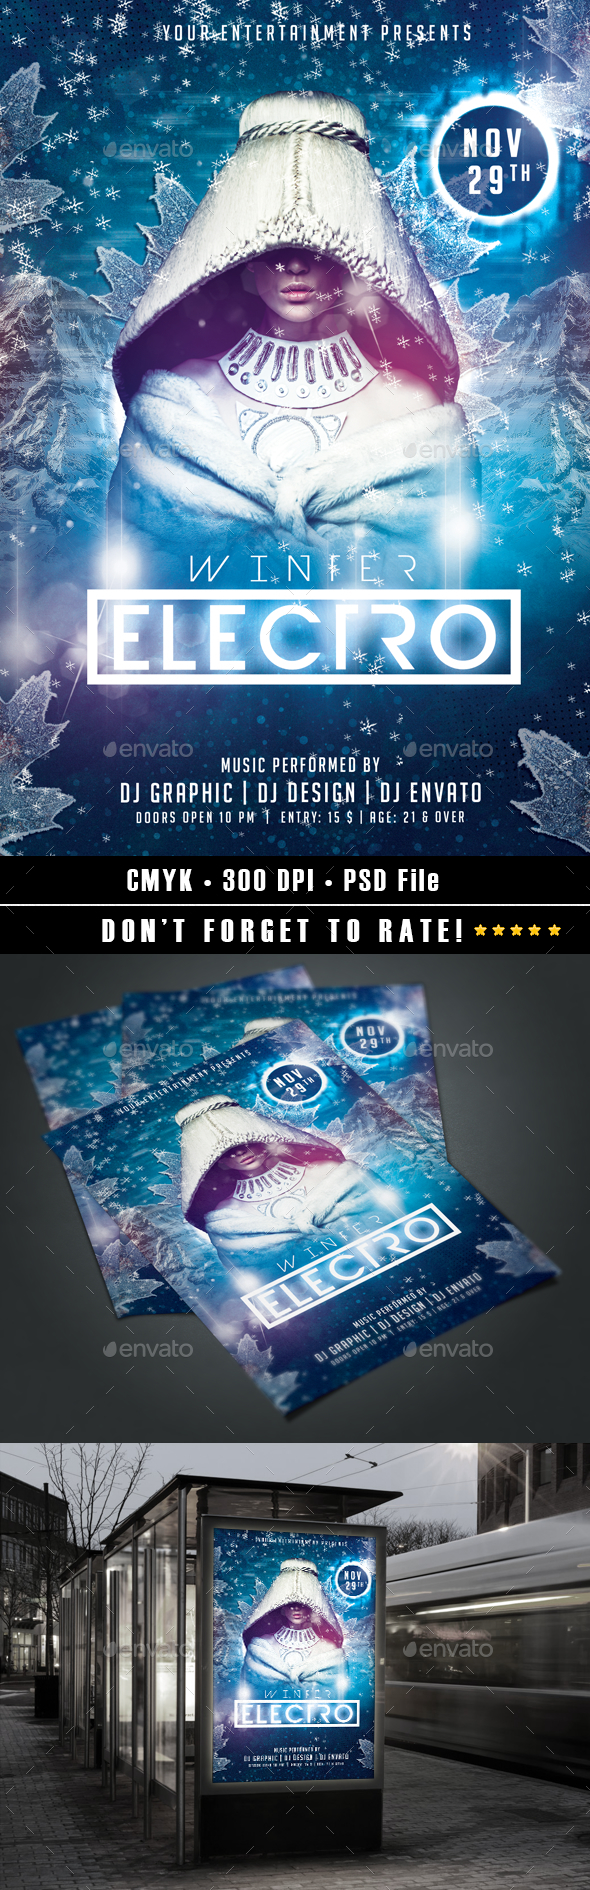 Winter Electro Flyer - Events Flyers